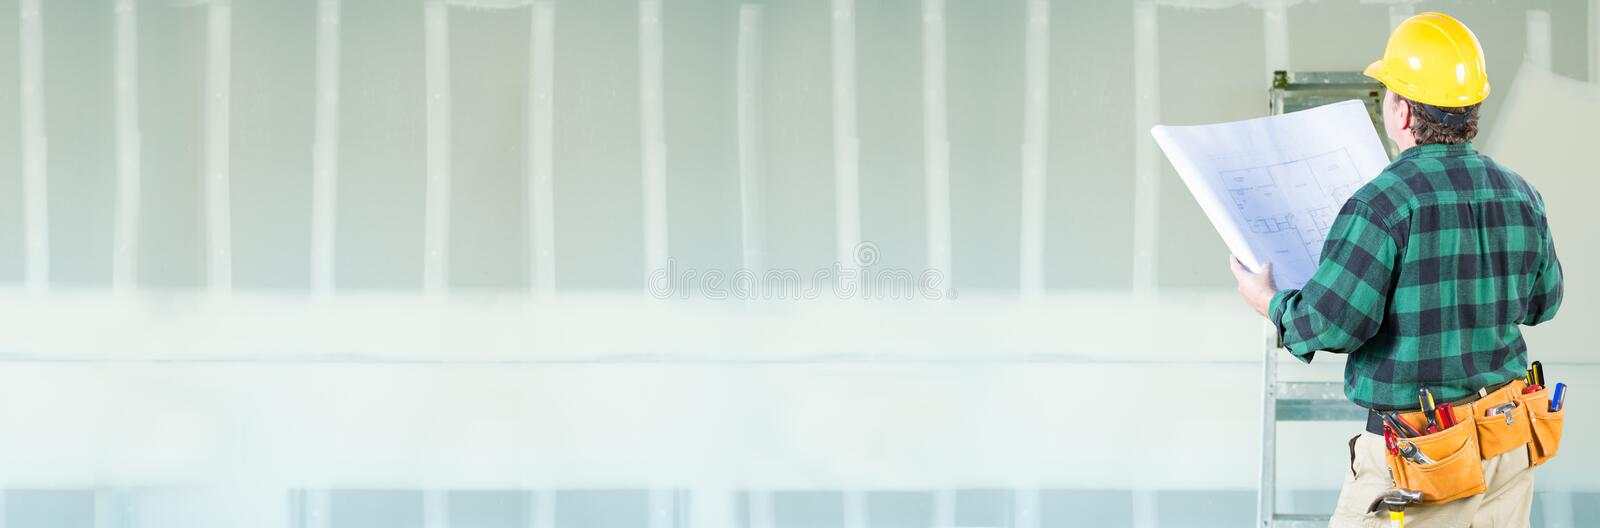 Male Contractor Wearing Hard Hat Facing Drywall Banner Background with Ladder stock image